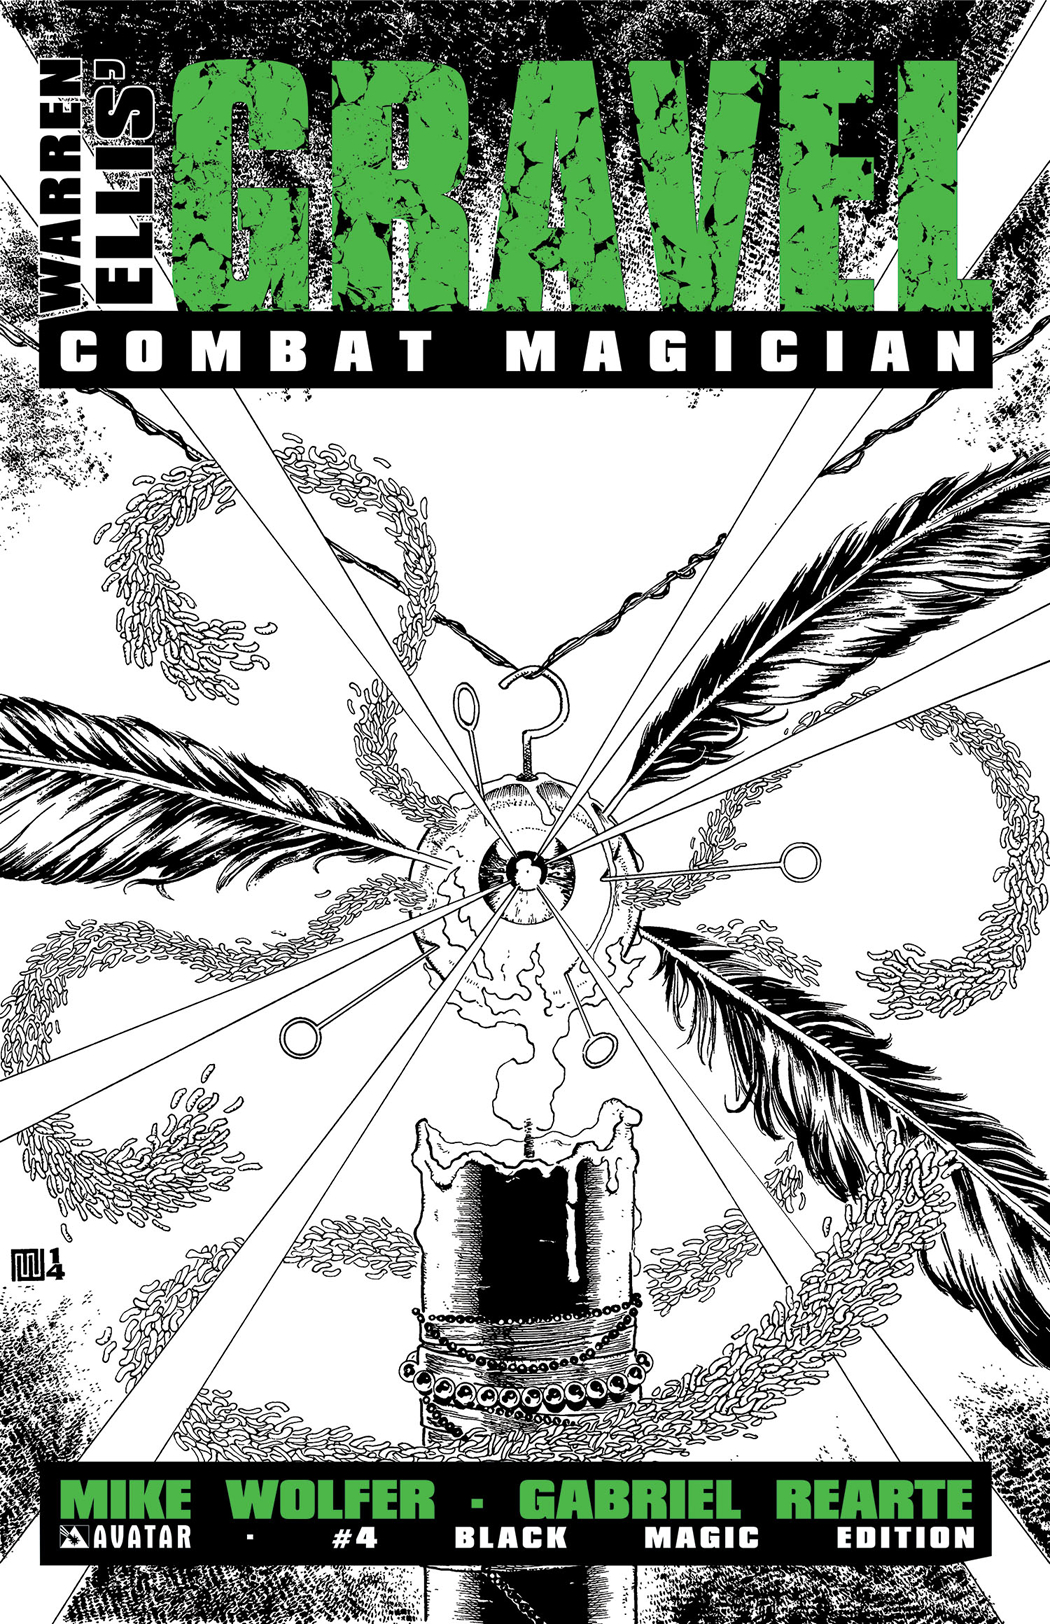 GRAVEL COMBAT MAGICIAN #4 BLACK MAGIC RETAILER ORDER INCV